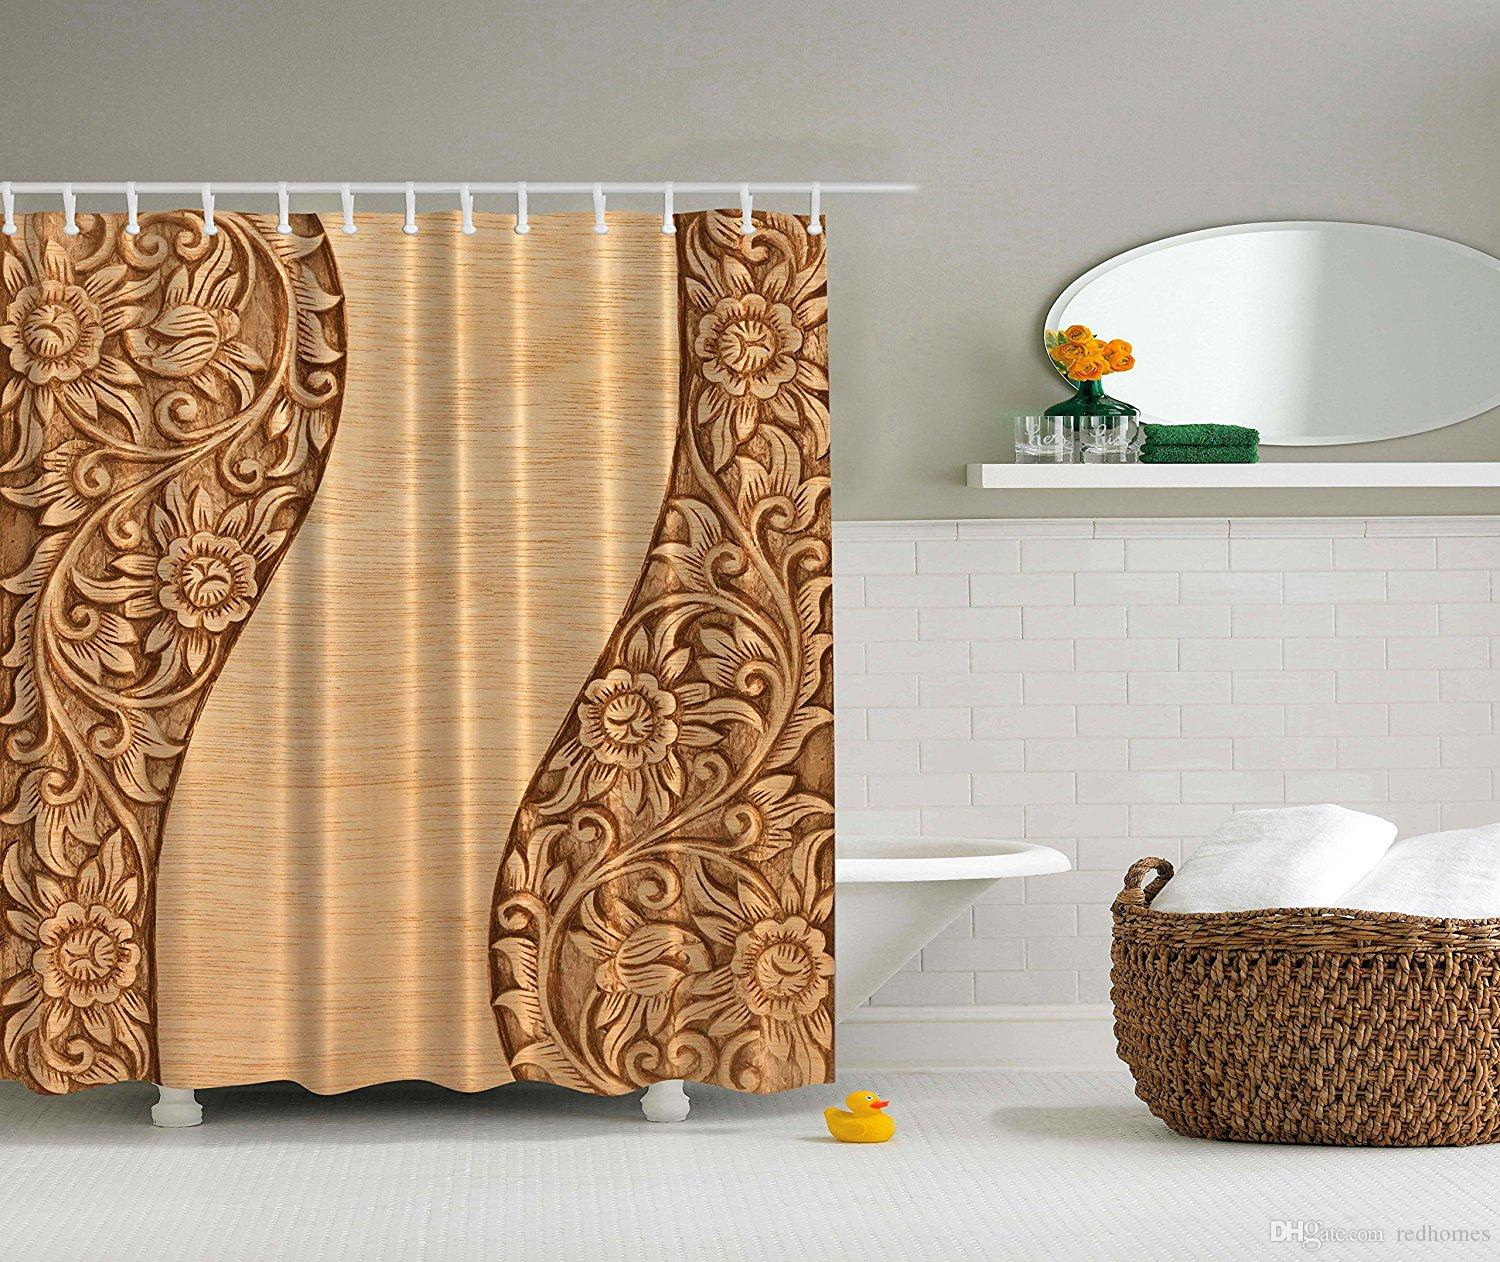 for clawfoot and curtain modern designer valance tubs curtains nytexas shower spaces unique with small